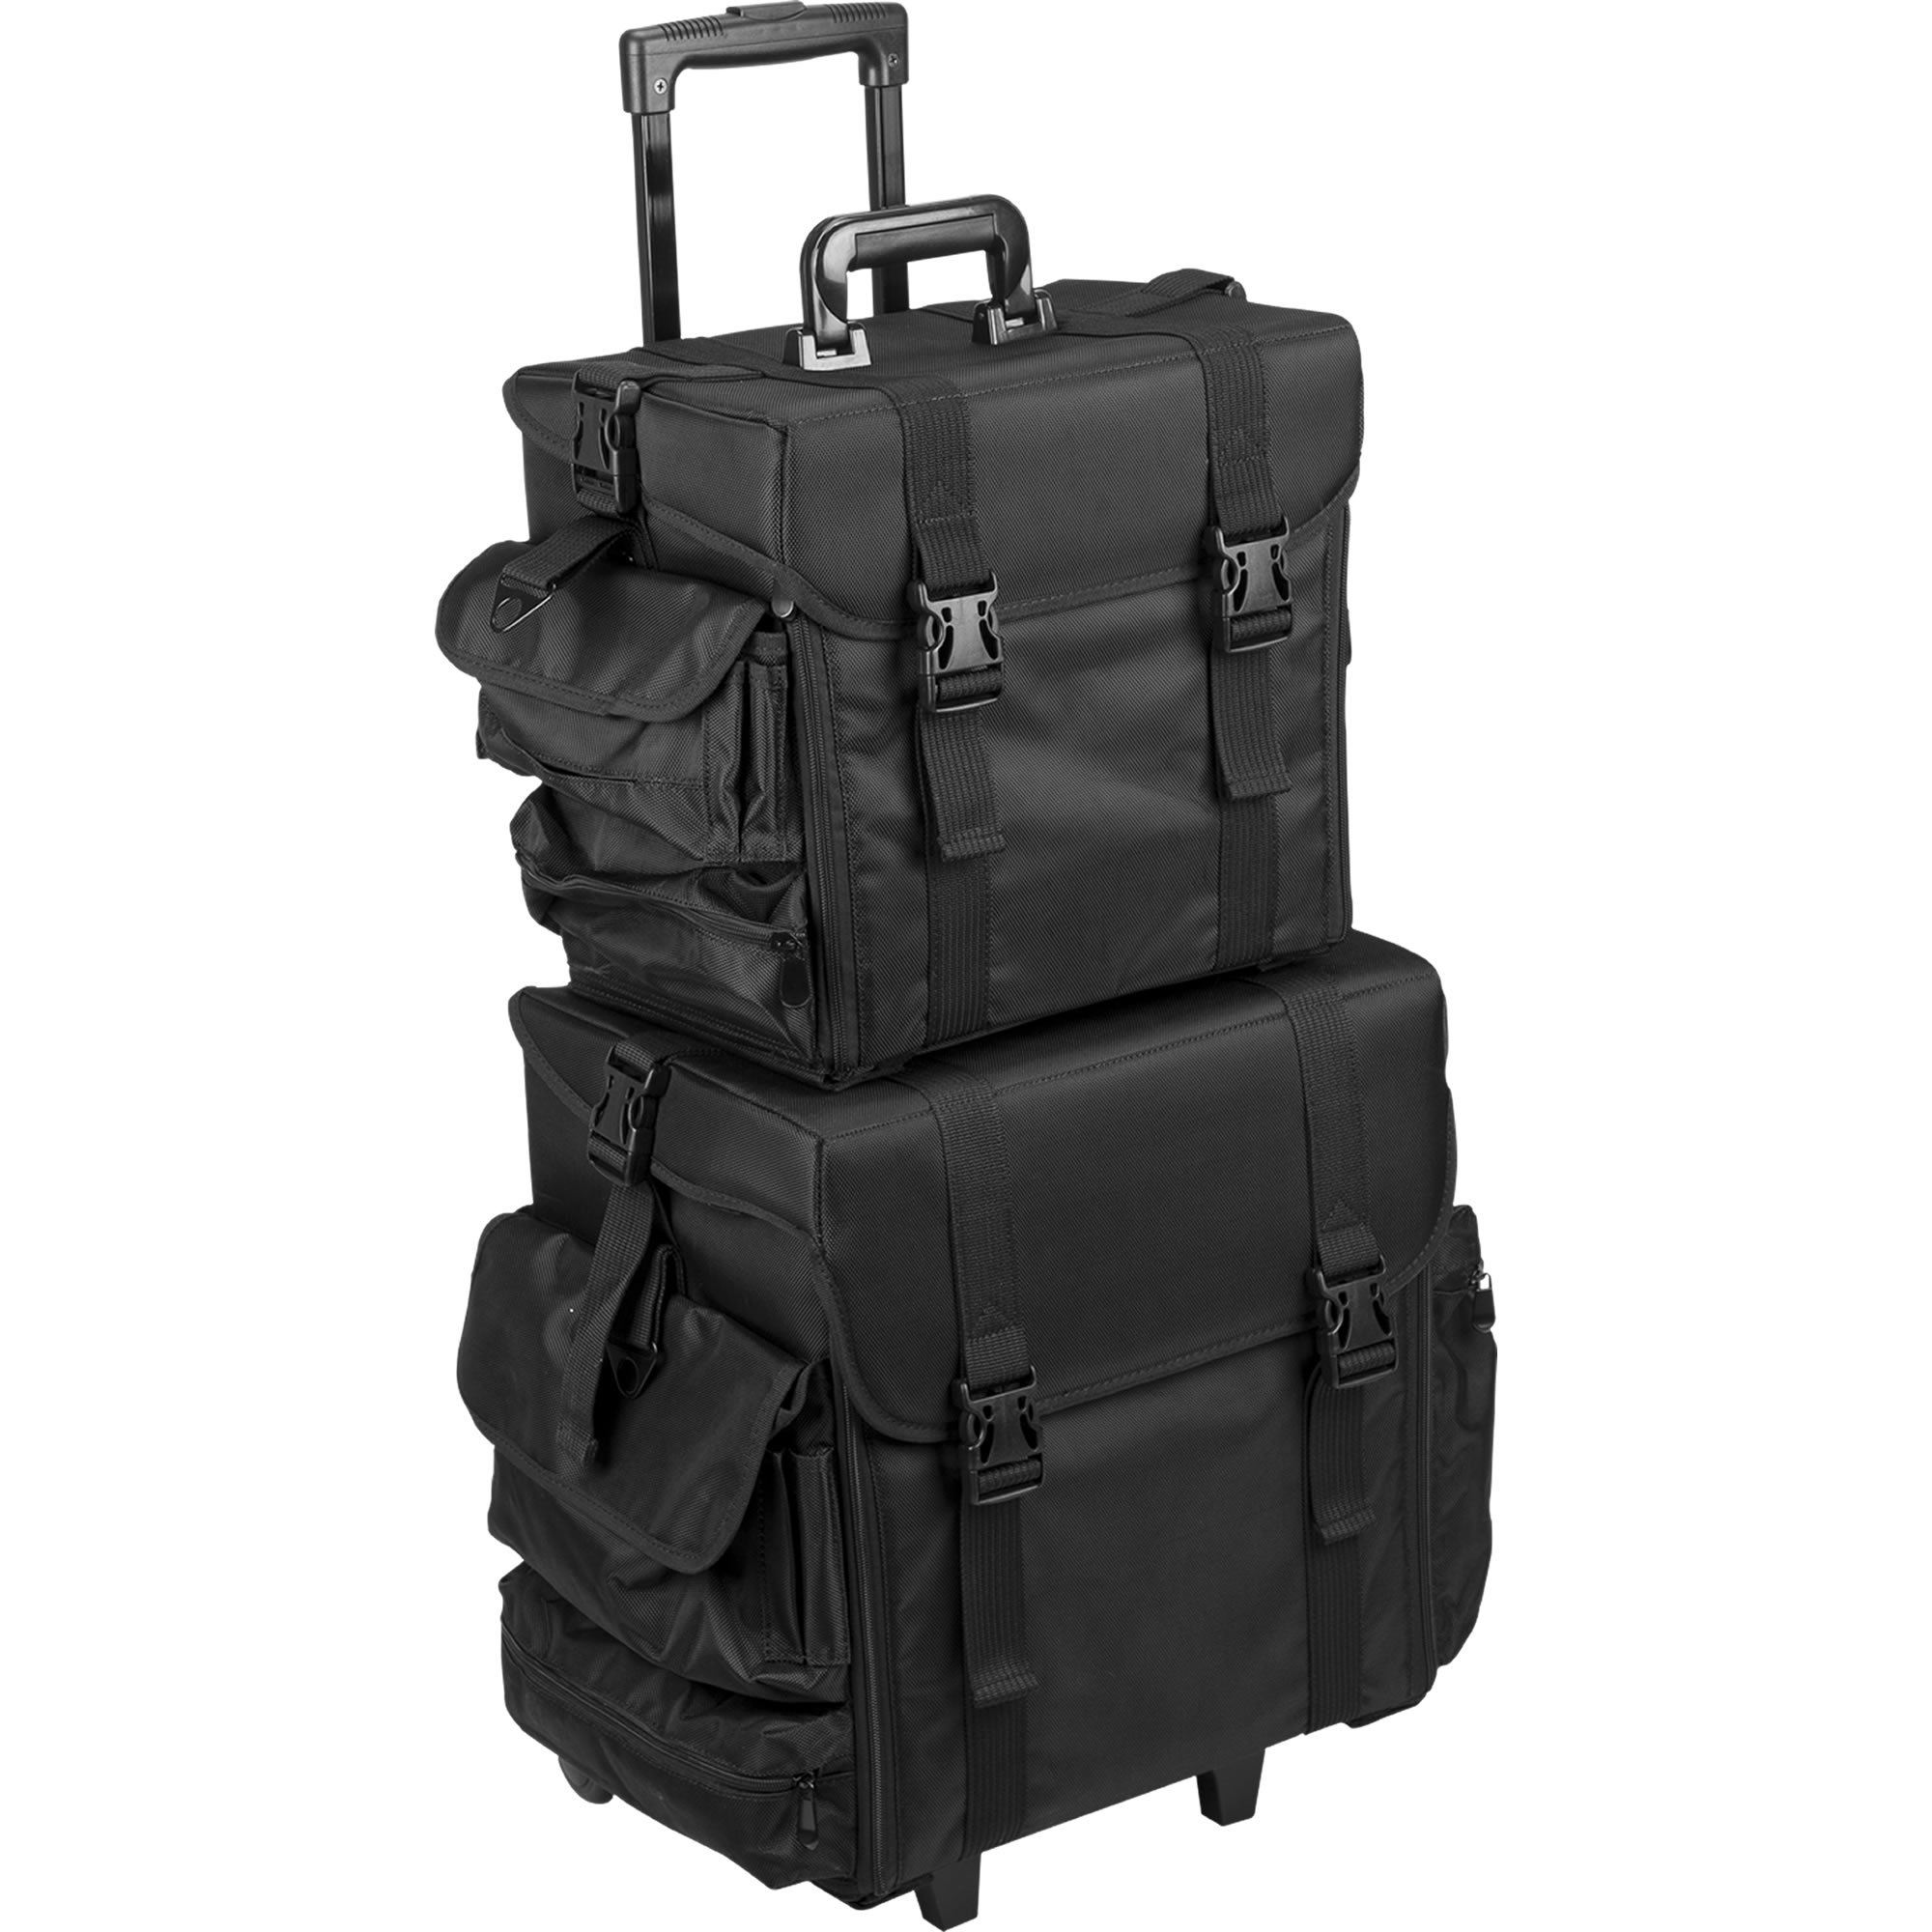 Hiker T5173 2-in-1 Soft Sided Professional Rolling Trolley Makeup Artist Cosmetic Case, Black Nylon